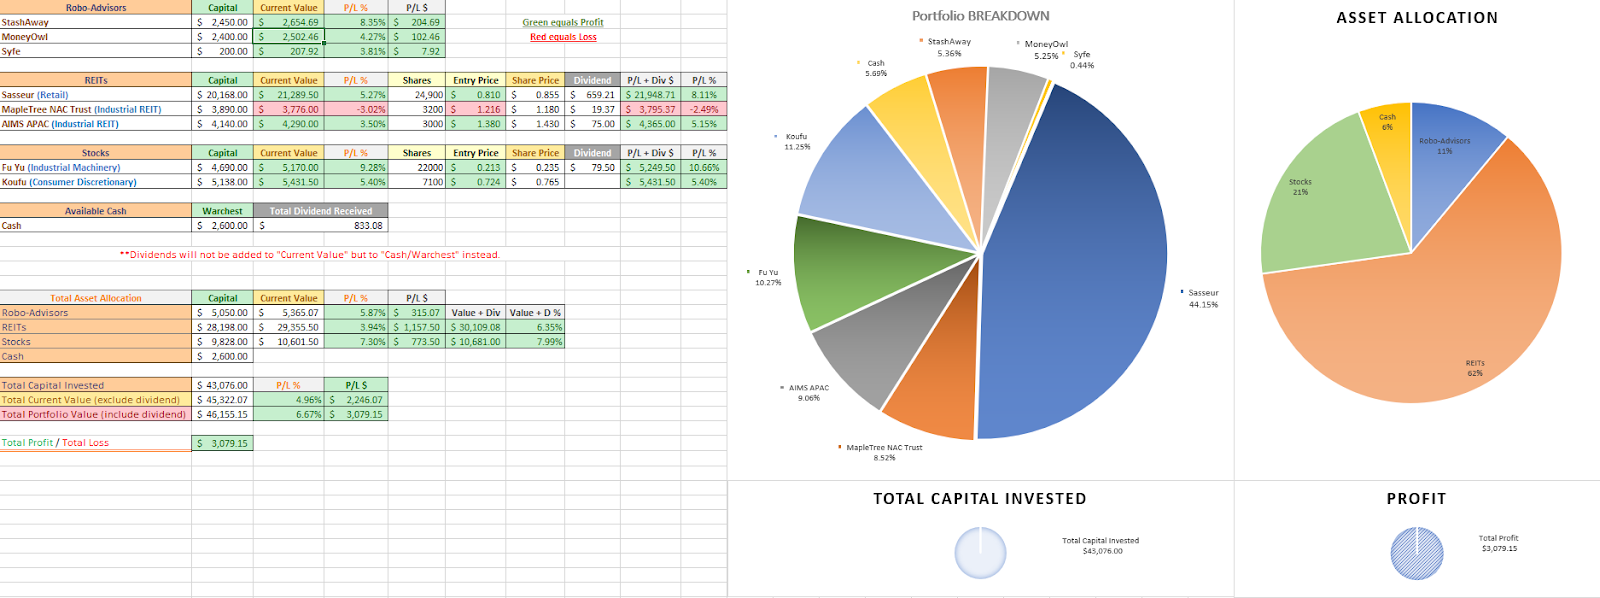 Every stock keyed and summarized into one excel sheet for easy viewing for my readers.